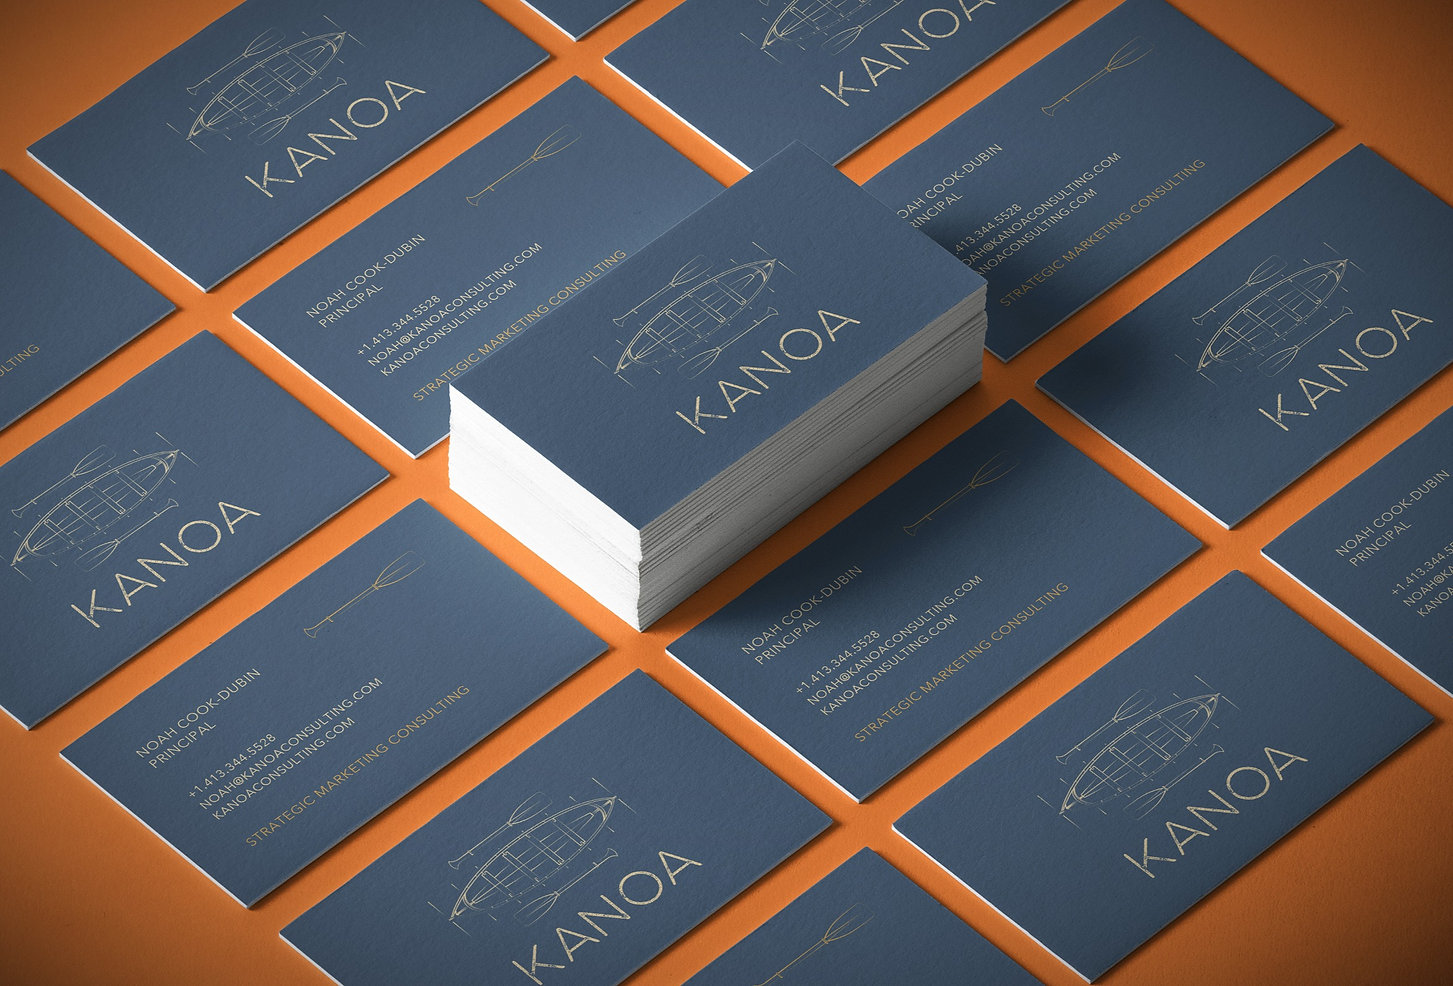 Kanoa%20BusinessCardMock_edited.jpg